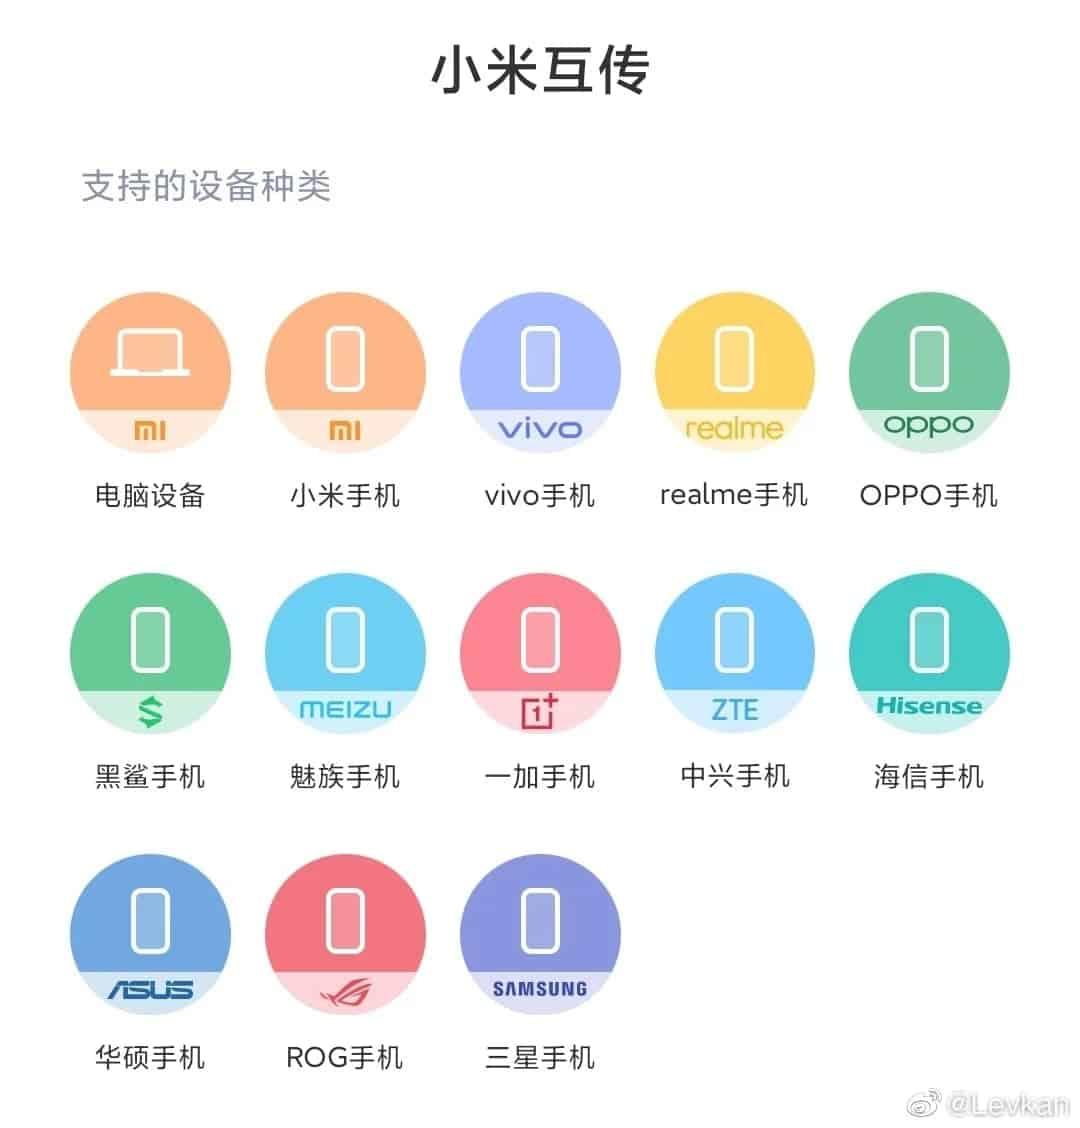 Samsung Mutual Transmission Alliance File Transfer from Weibo